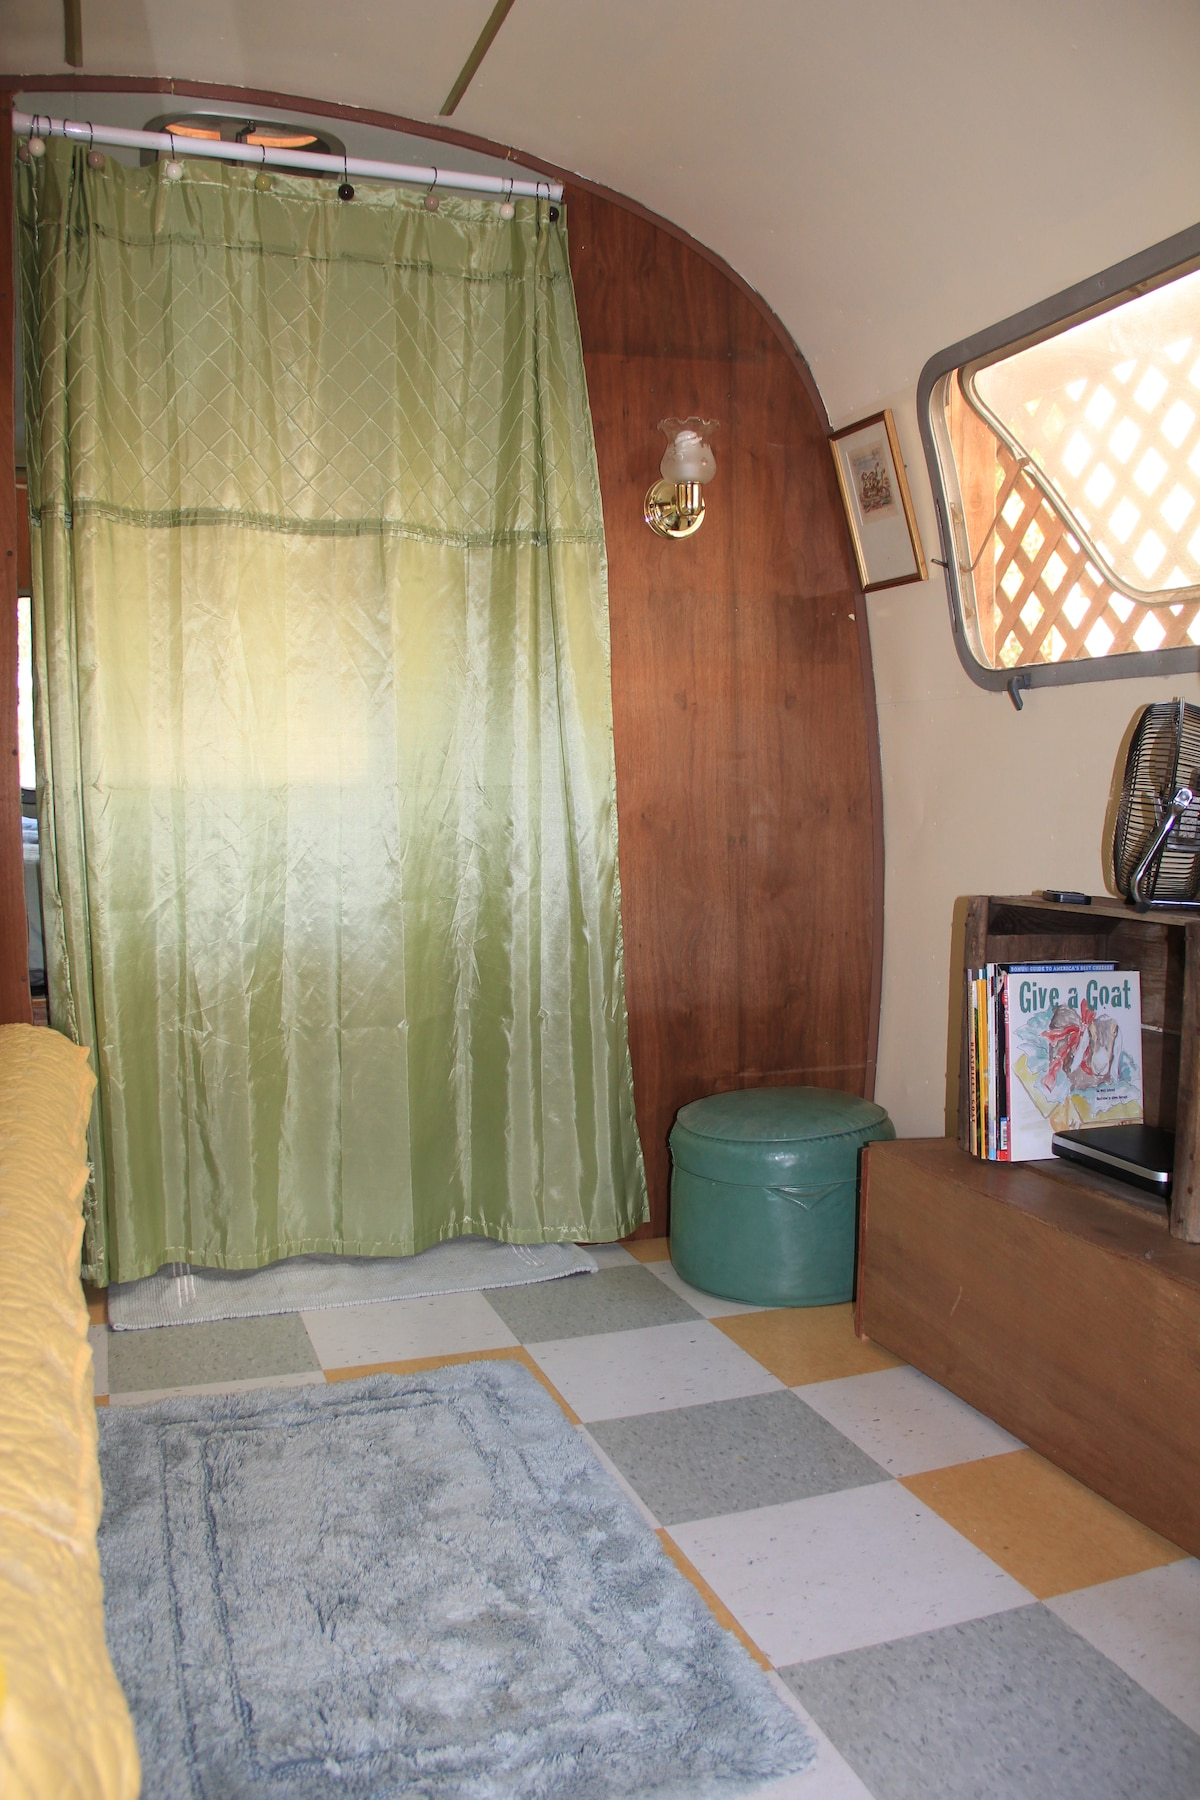 Sofa/twin bed sitting area with movies and small DVD player